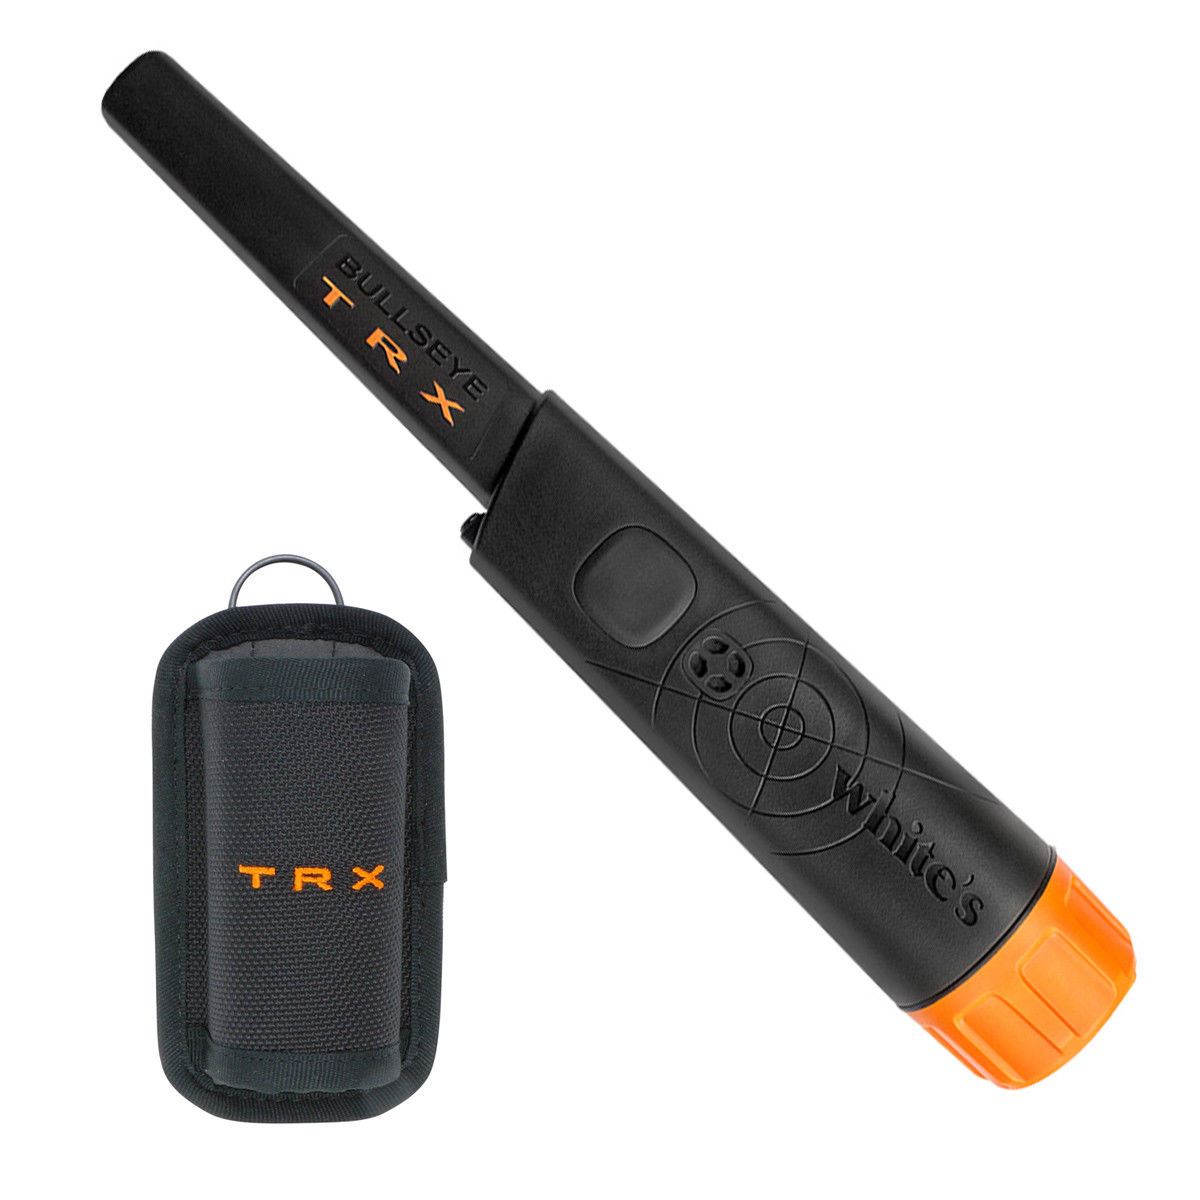 Whites TRX Pin pointer, Waterproof 3mtrs.